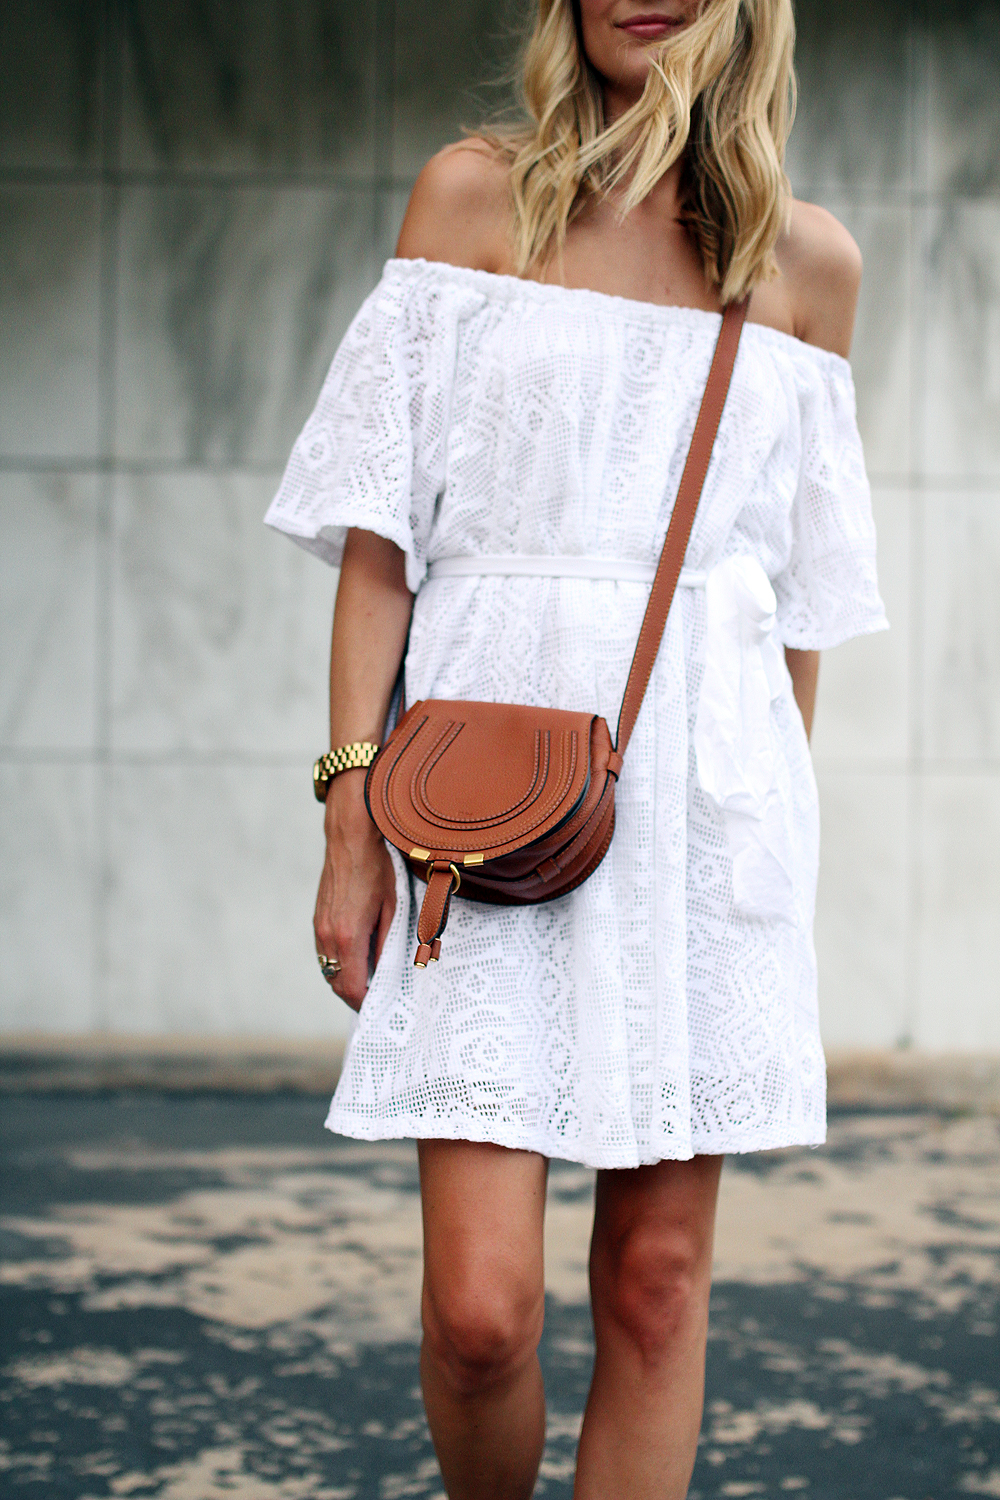 fashion-jackson-chloe-tan-marcie-crossbody-banana-republic-white-lace-off-the-shoulder-dress